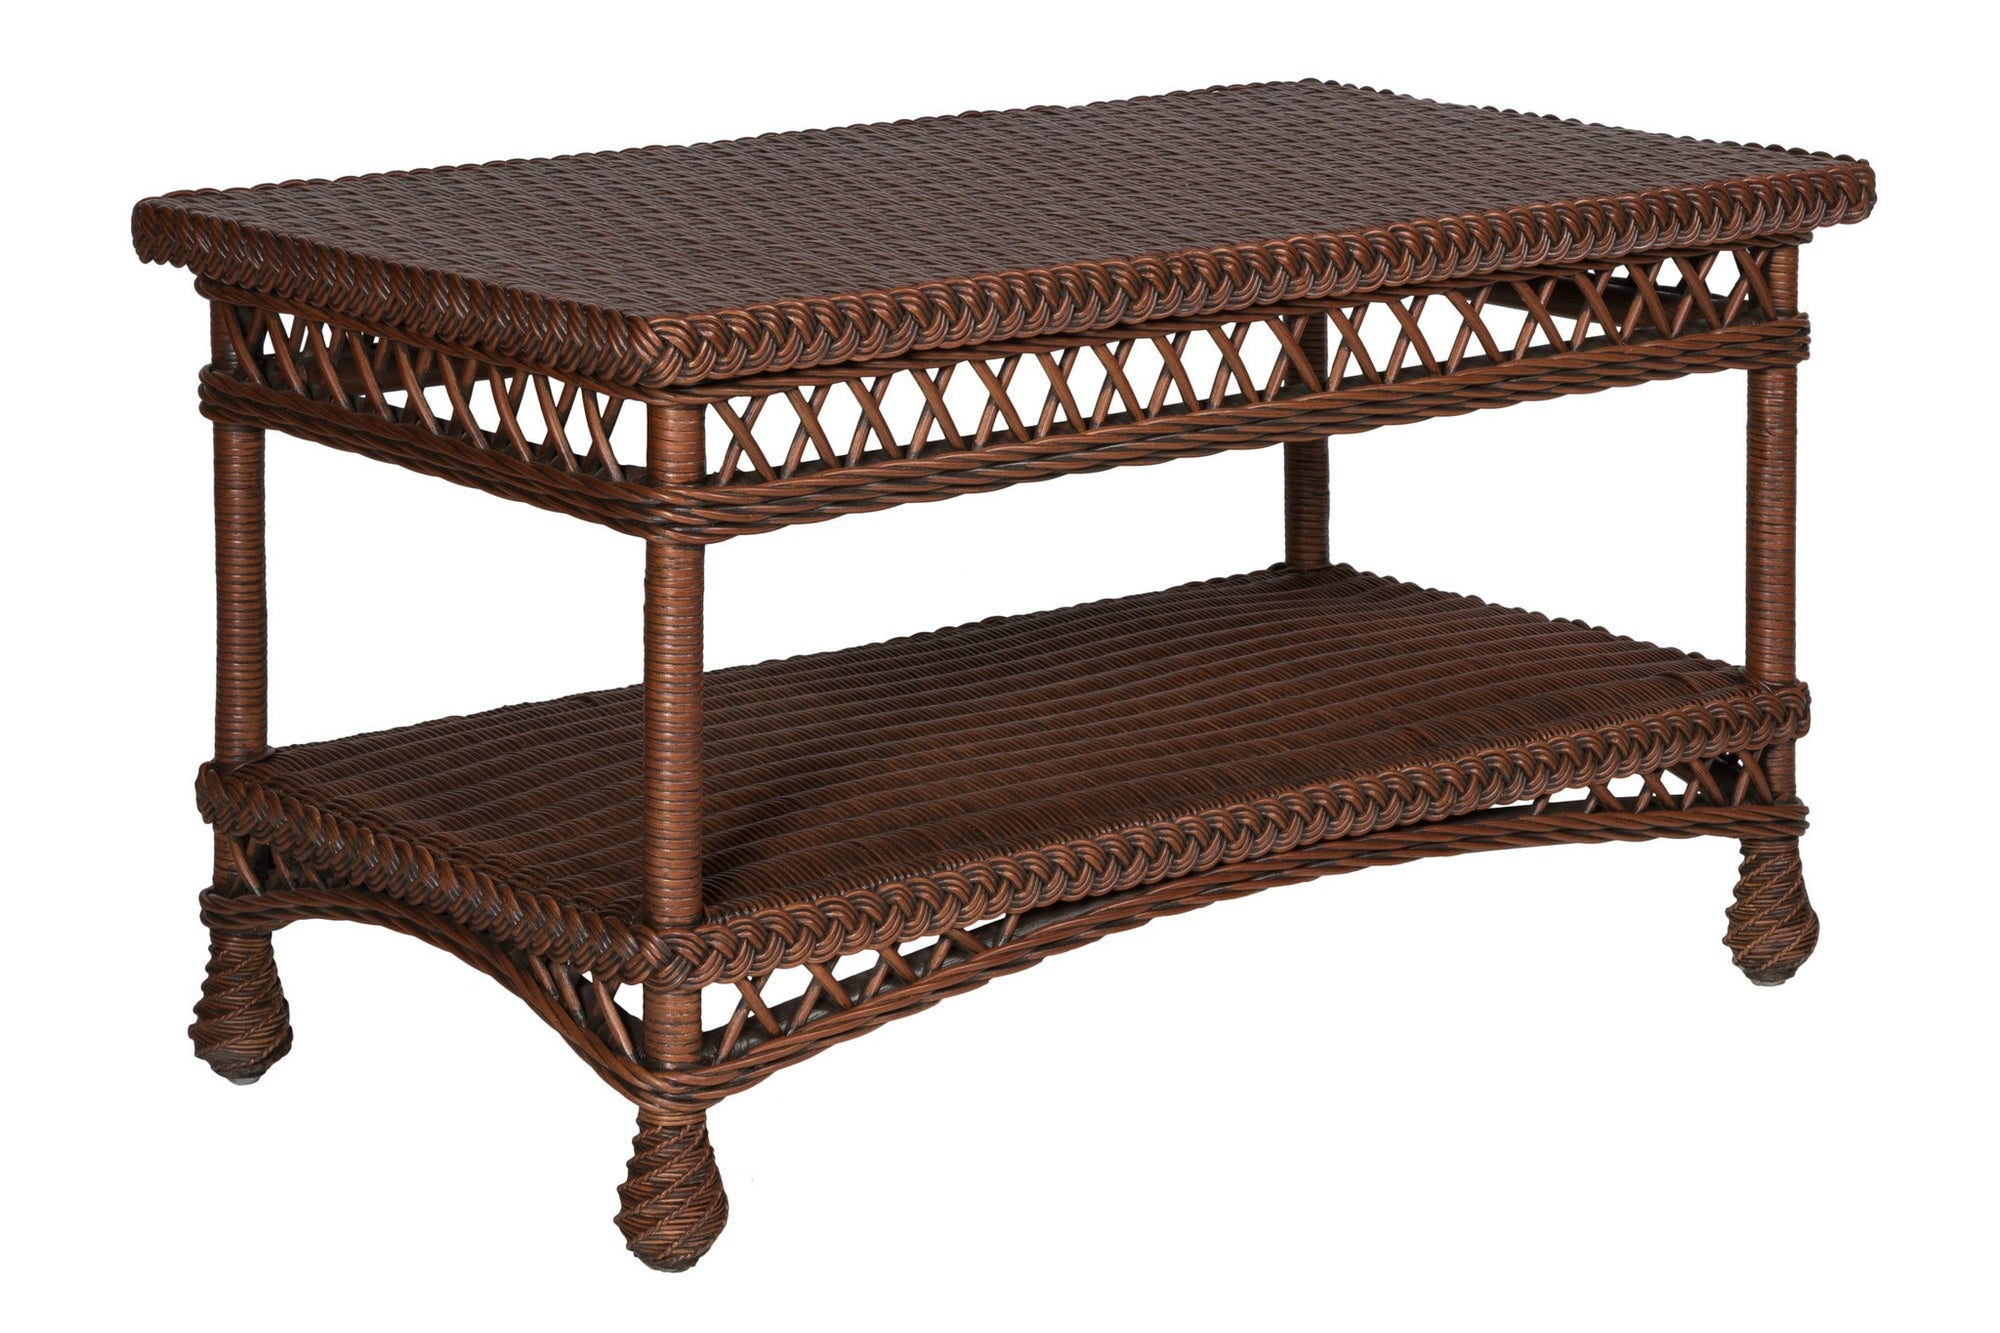 Designer Wicker & Rattan By Tribor Rockport Coffee Table by Designer Wicker from Tribor Coffee Table - Rattan Imports